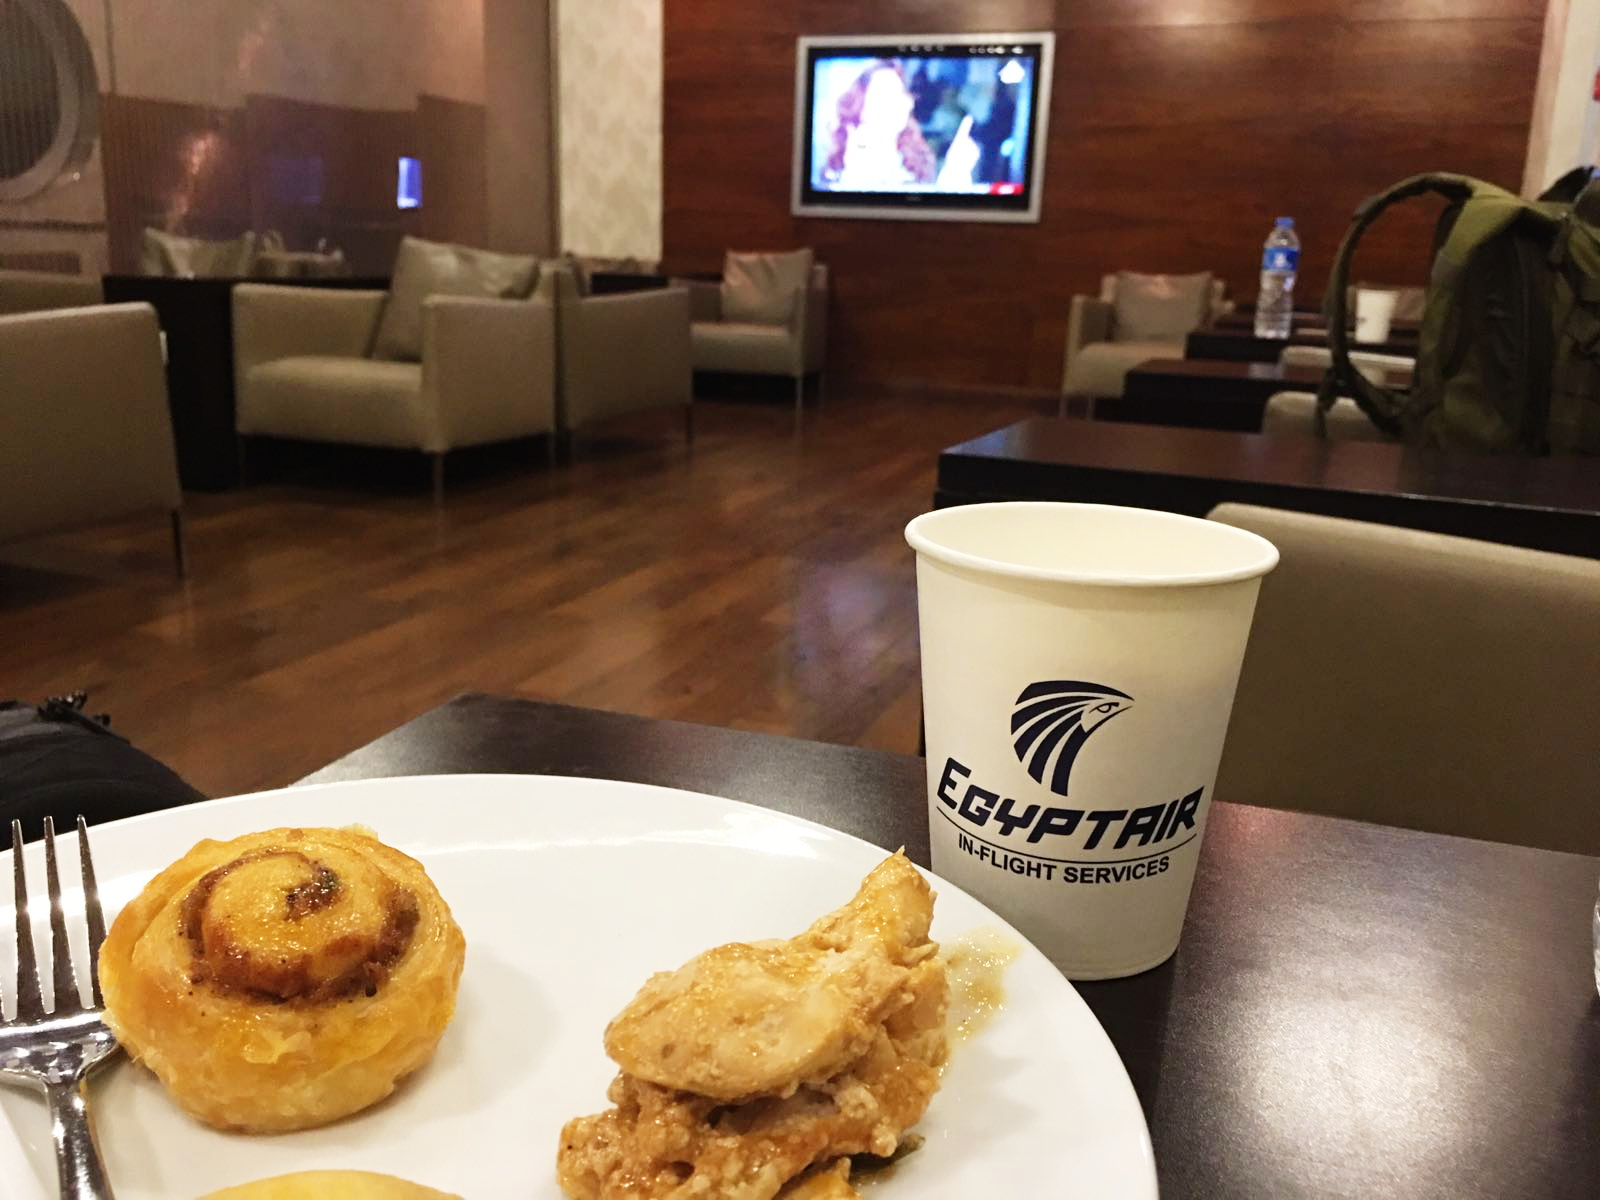 Egypt Air Business Class Flight Experience from Madrid, Spain to Cairo, Egypt and Addis Ababa, Ethiopia